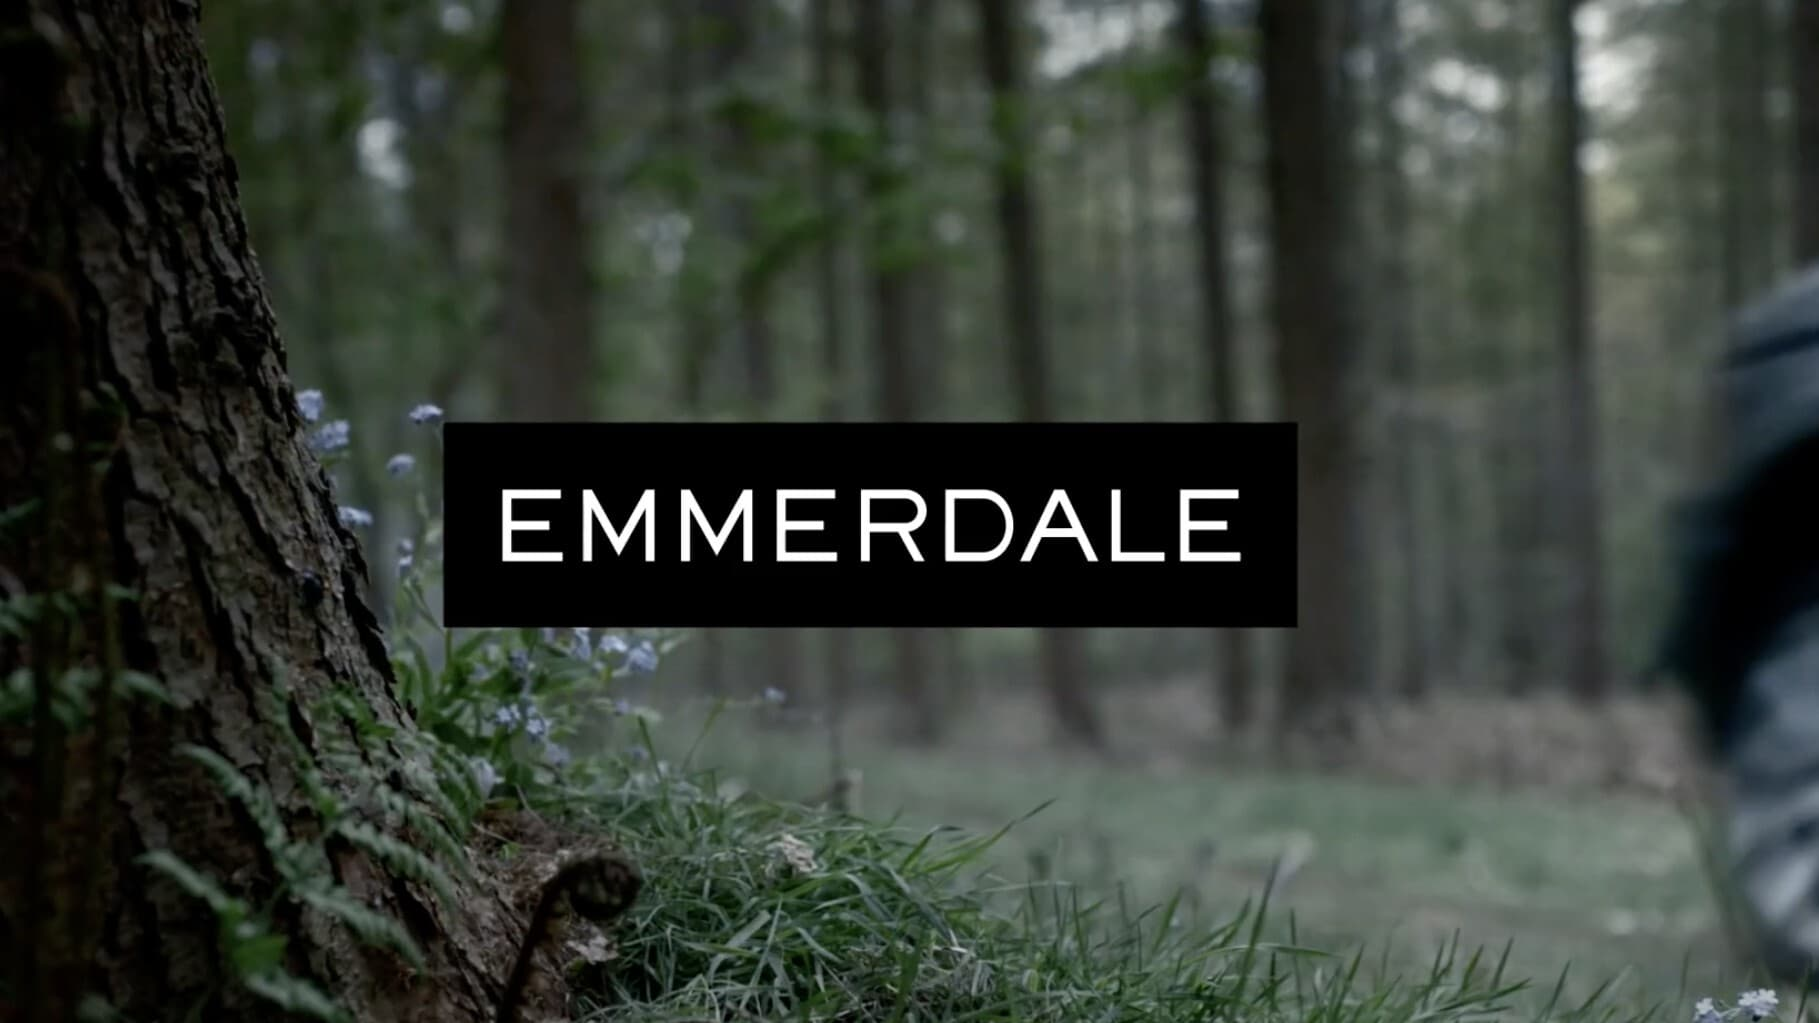 Emmerdale - Season 46 Episode 303 : Friday 6th December 2019